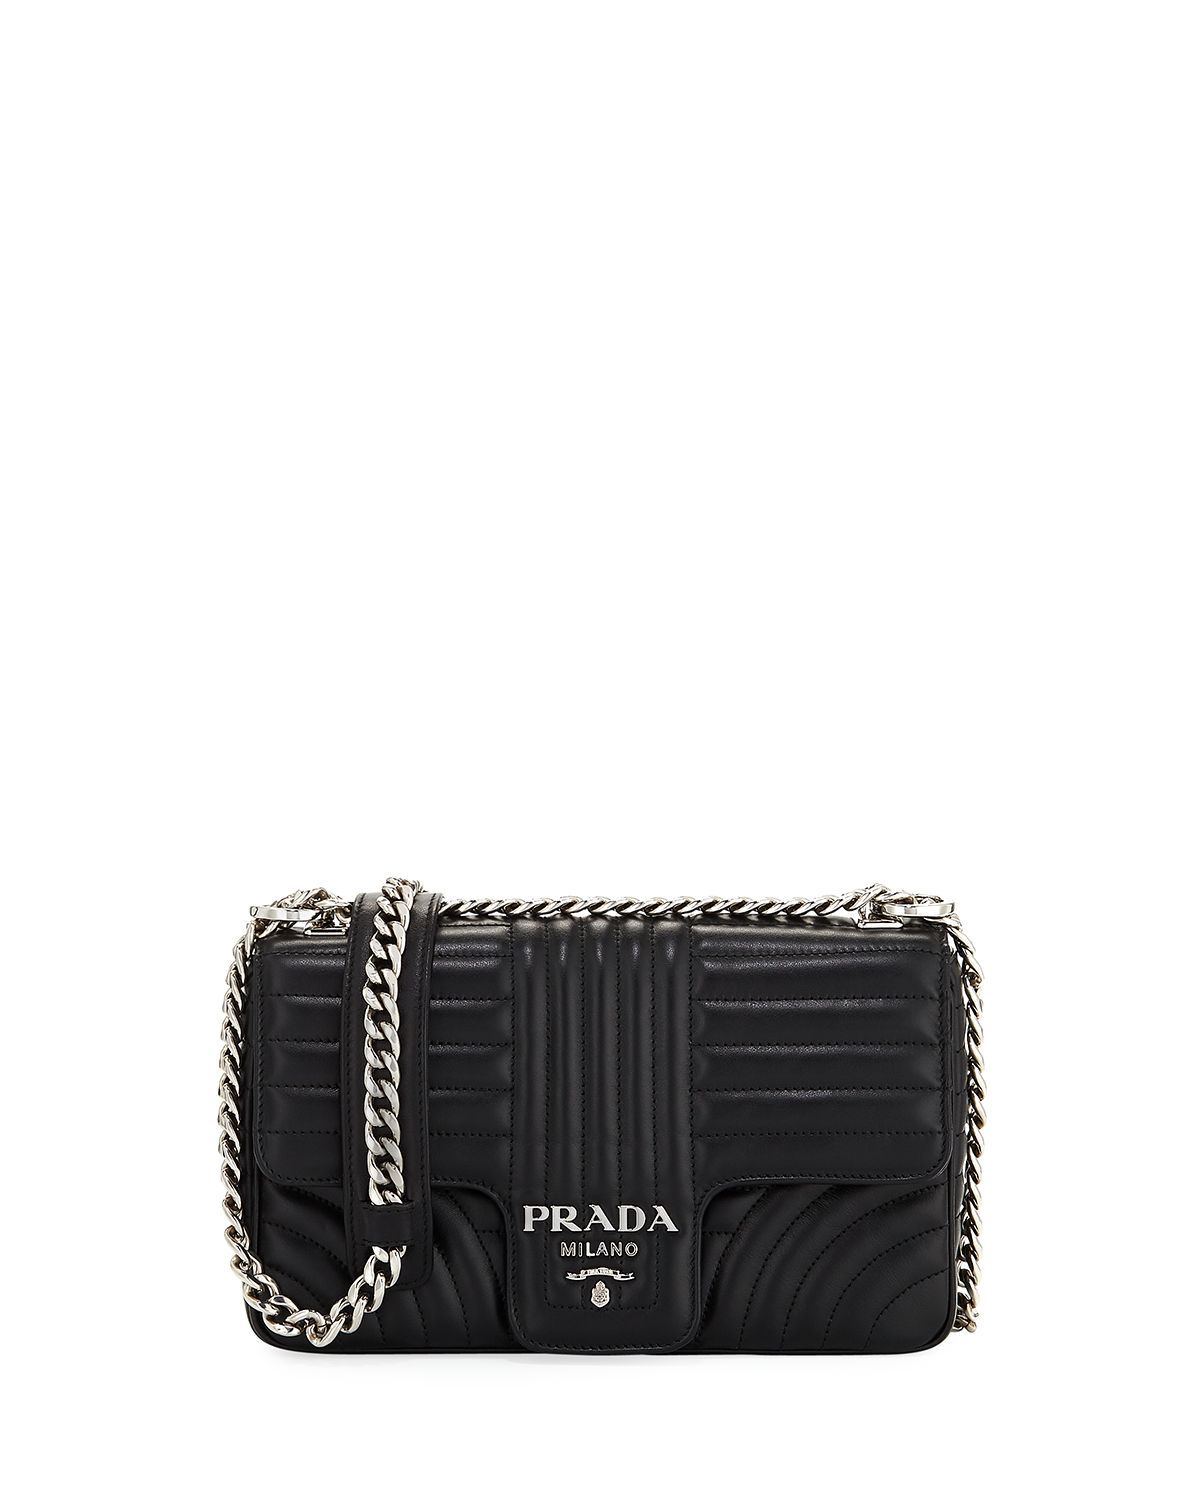 Prada Medium Diagramme Shoulder Bag  66d4371e42086